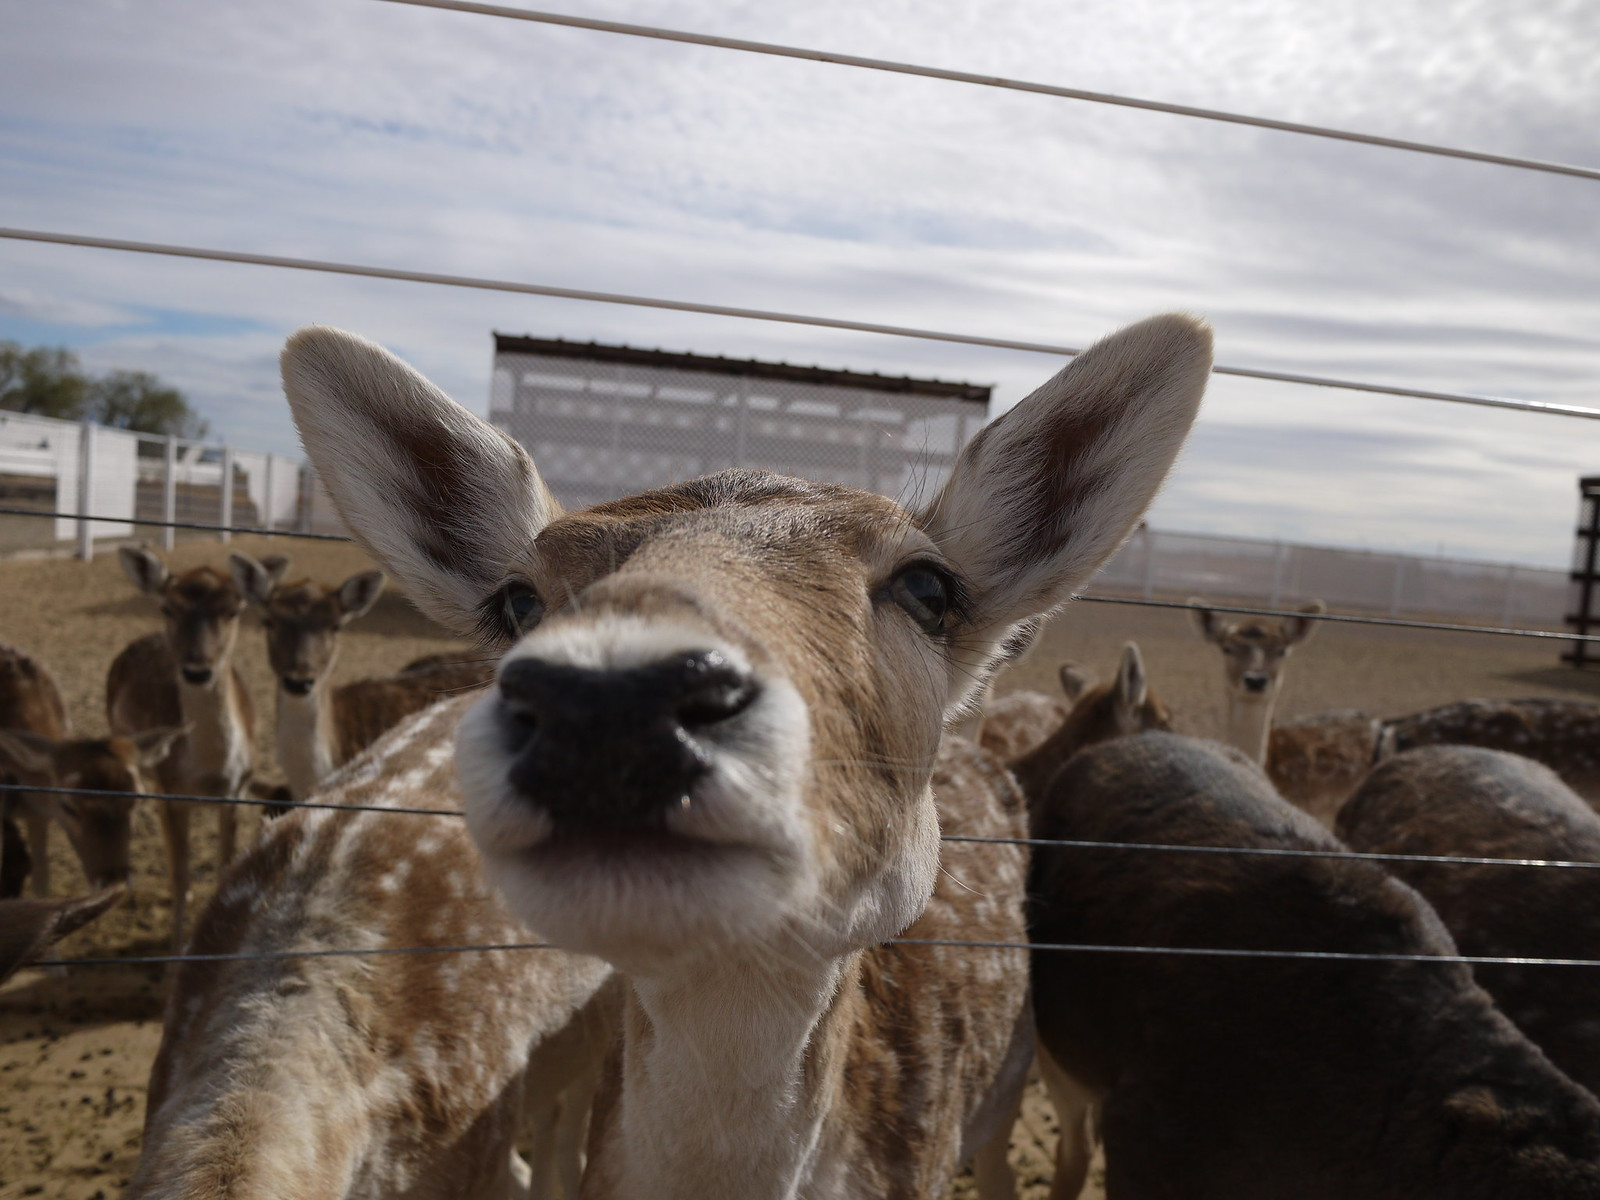 PIC: Rooster Cogburn Ostrich Ranch - Close Up of a Fallow Deer